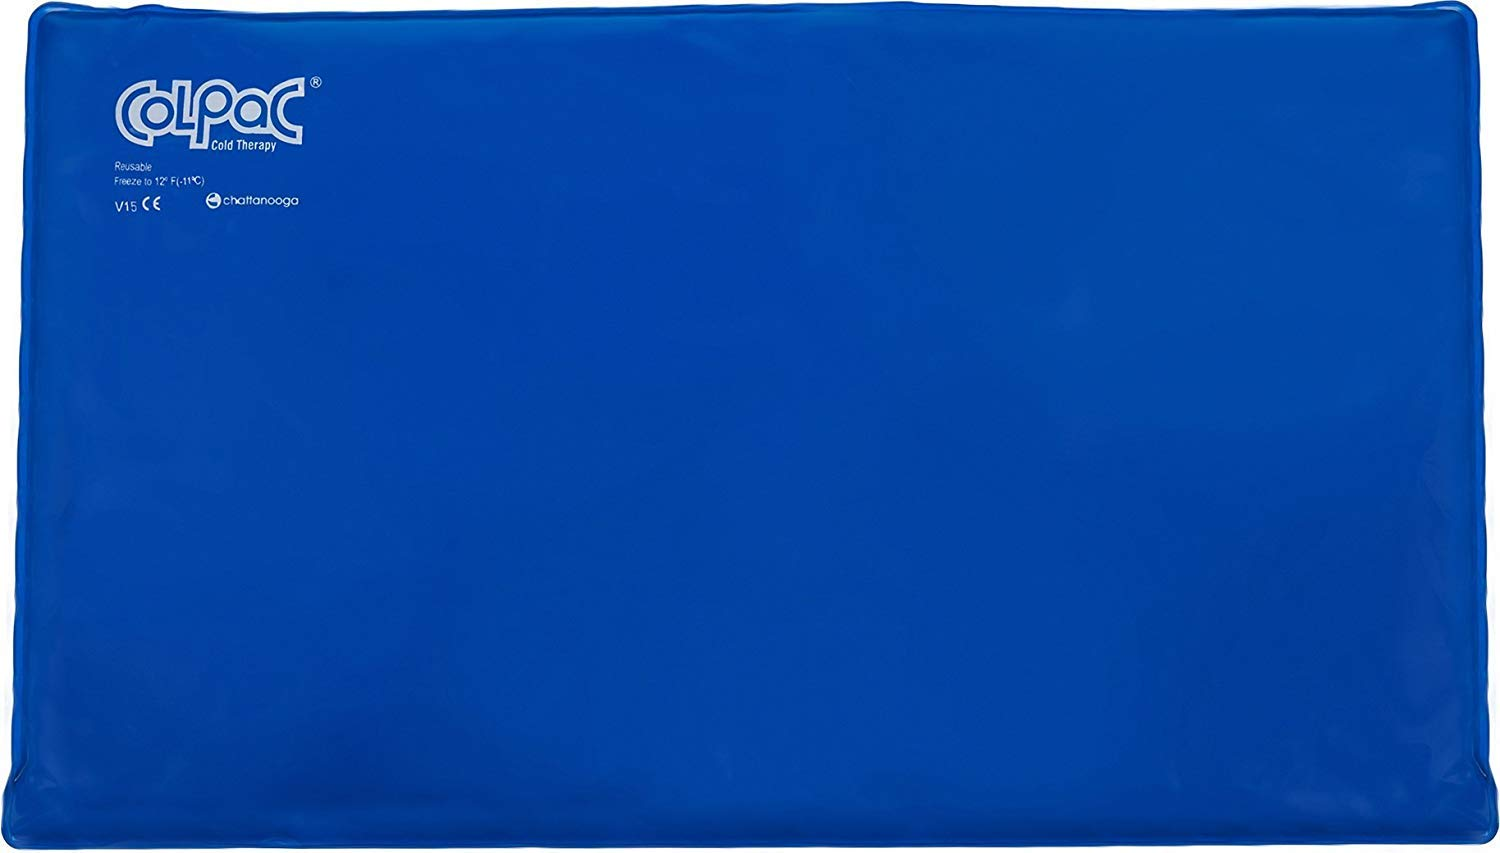 Chattanooga ColPac - Blue Vinyl - Oversize Large Ice Pack - 11 in x 21 in (28 cm x 53 cm) by Chattanooga